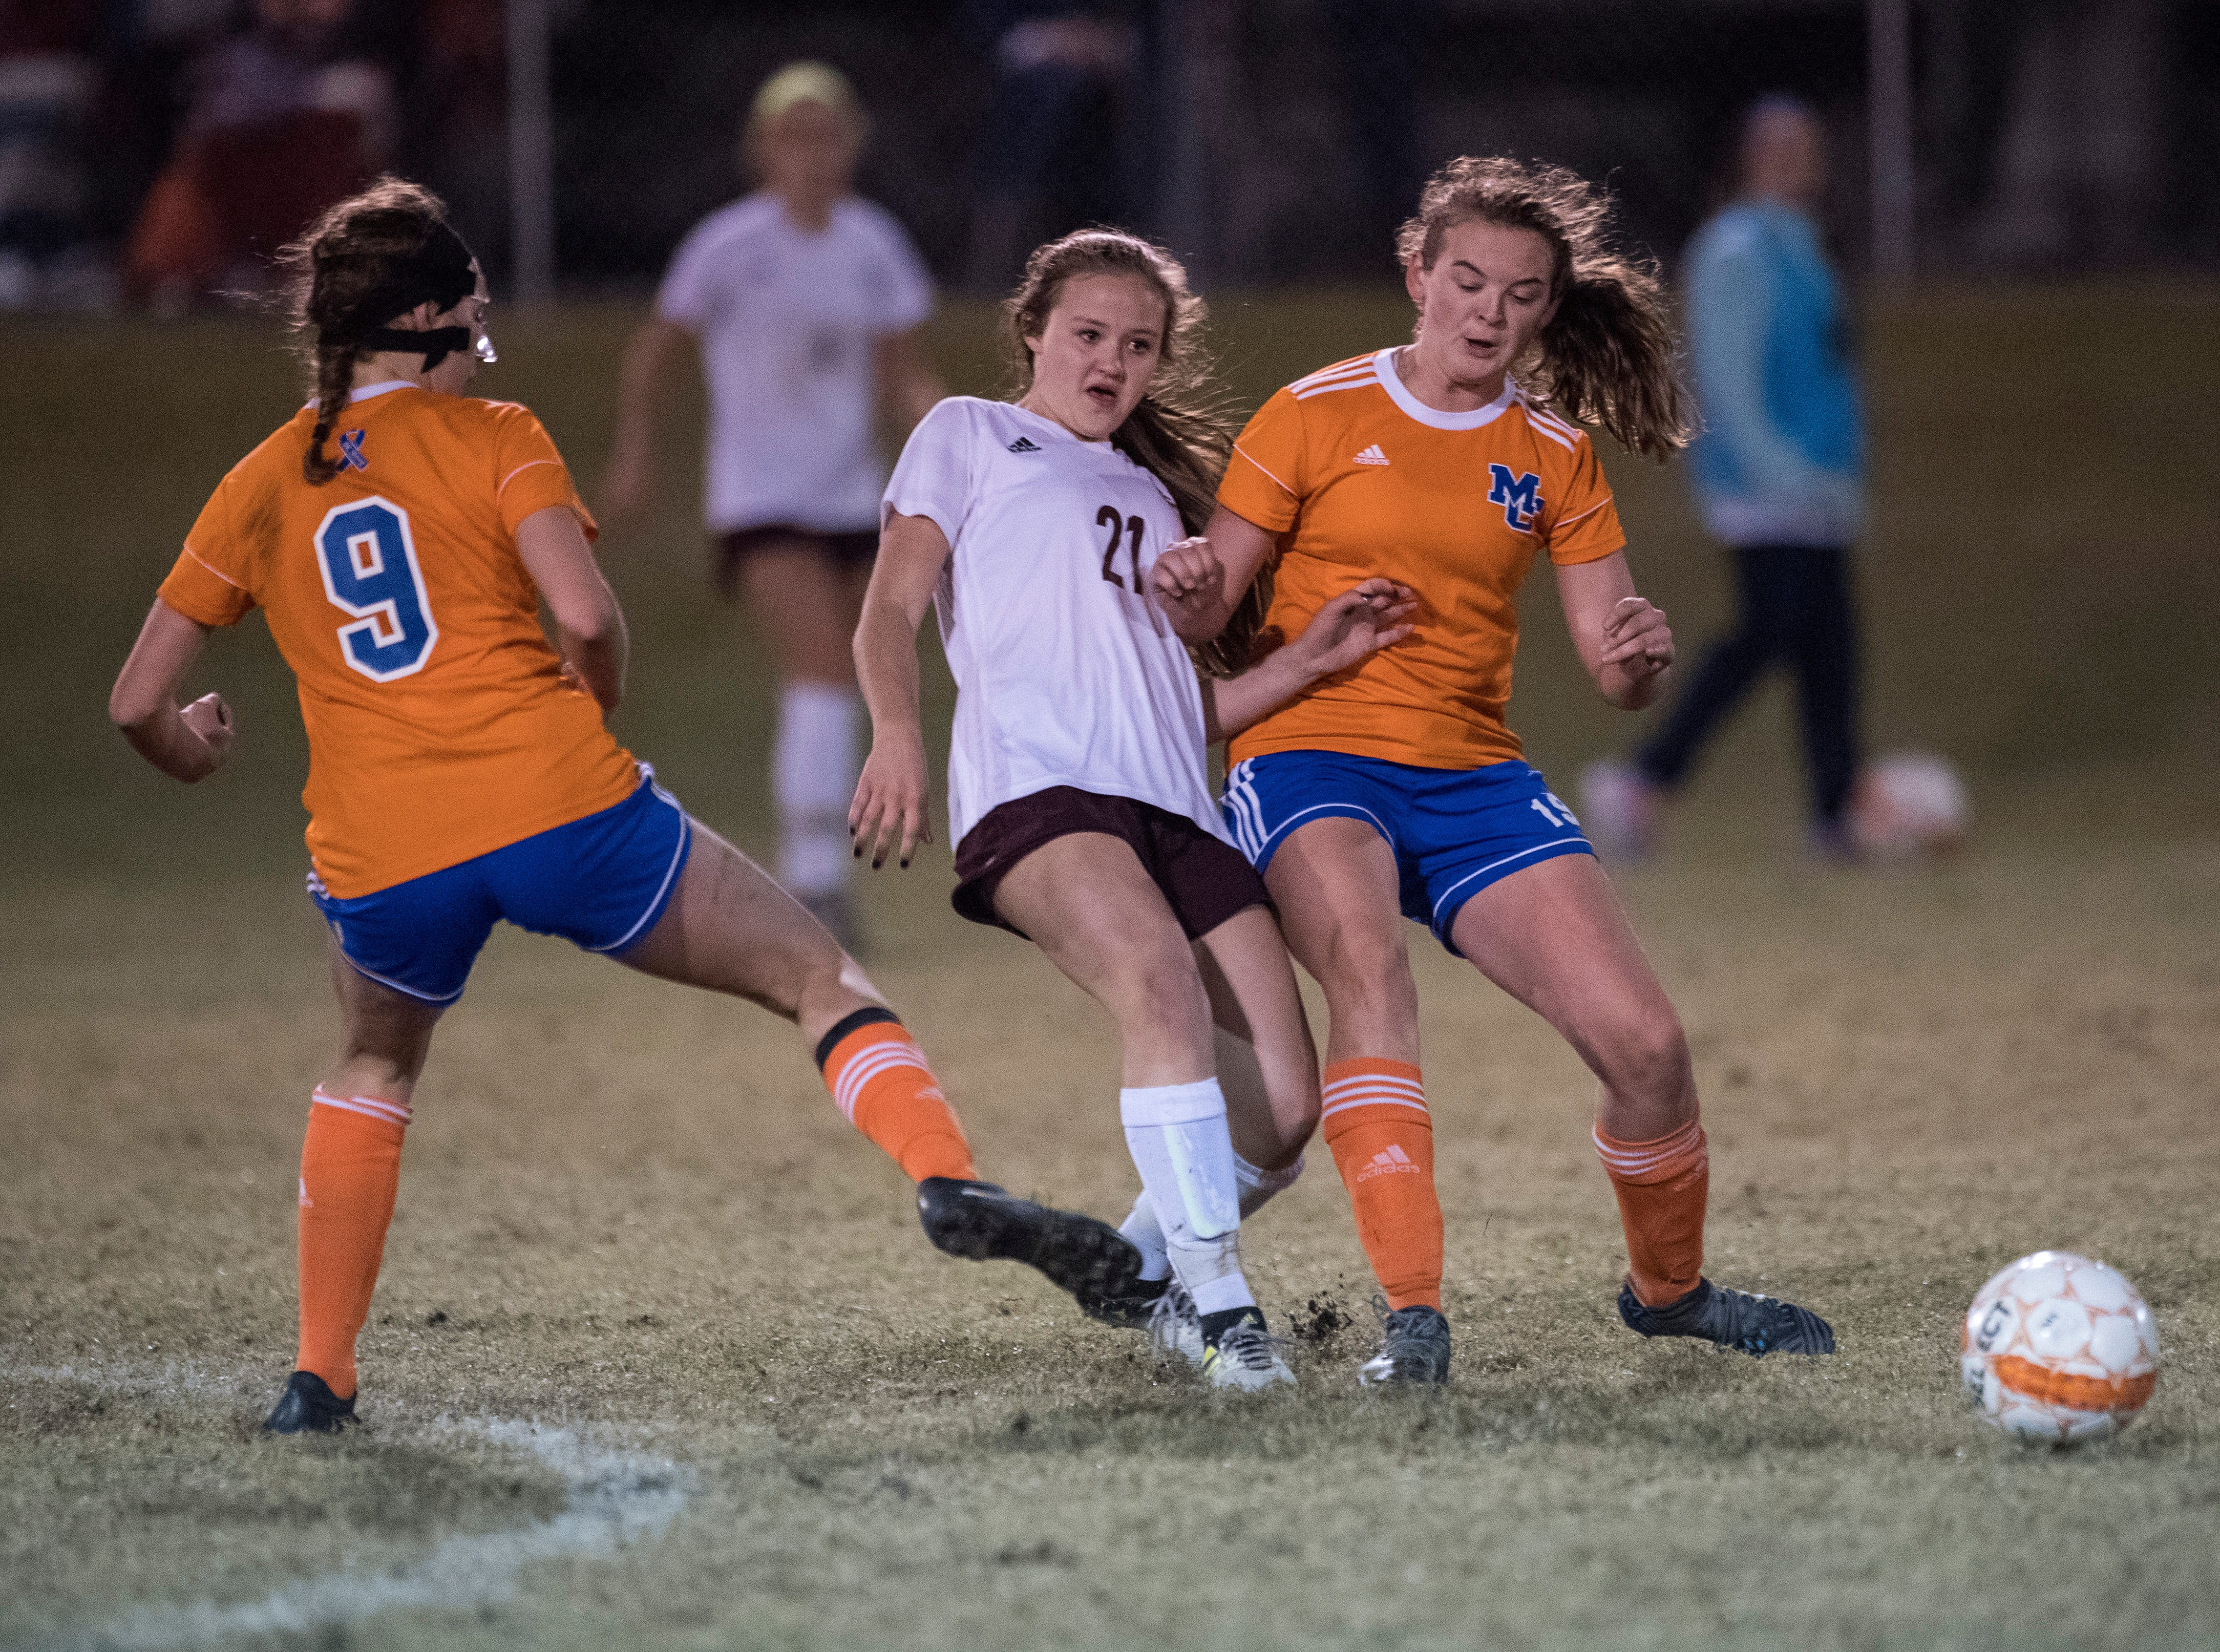 Henderson's Cecilia Palummo (21) passes the ball away from Marshall County defense during the first round of the KHSAA state tournament at Marshall County High School Monday, Oct. 23, 2018.